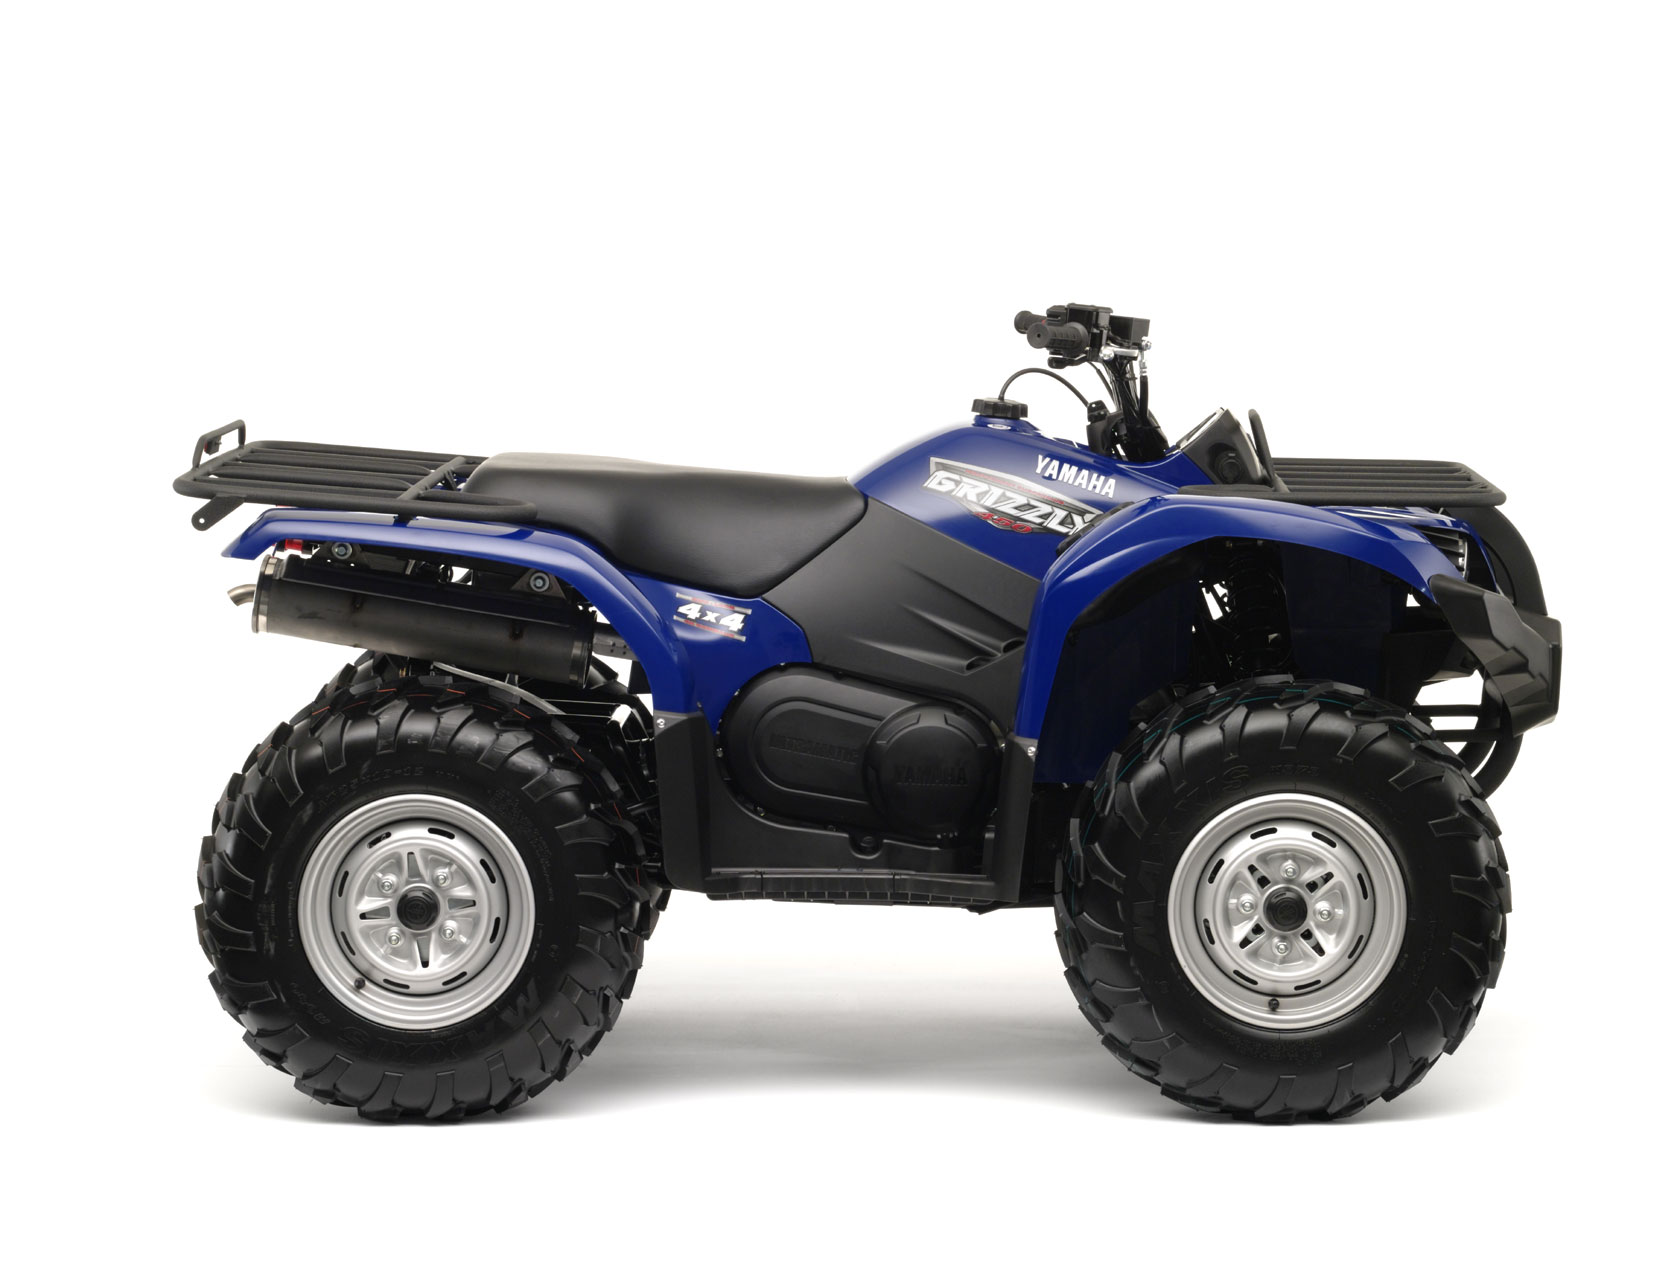 2009 yamaha grizzly 350 4x4 irs for Yamaha grizzly 4x4